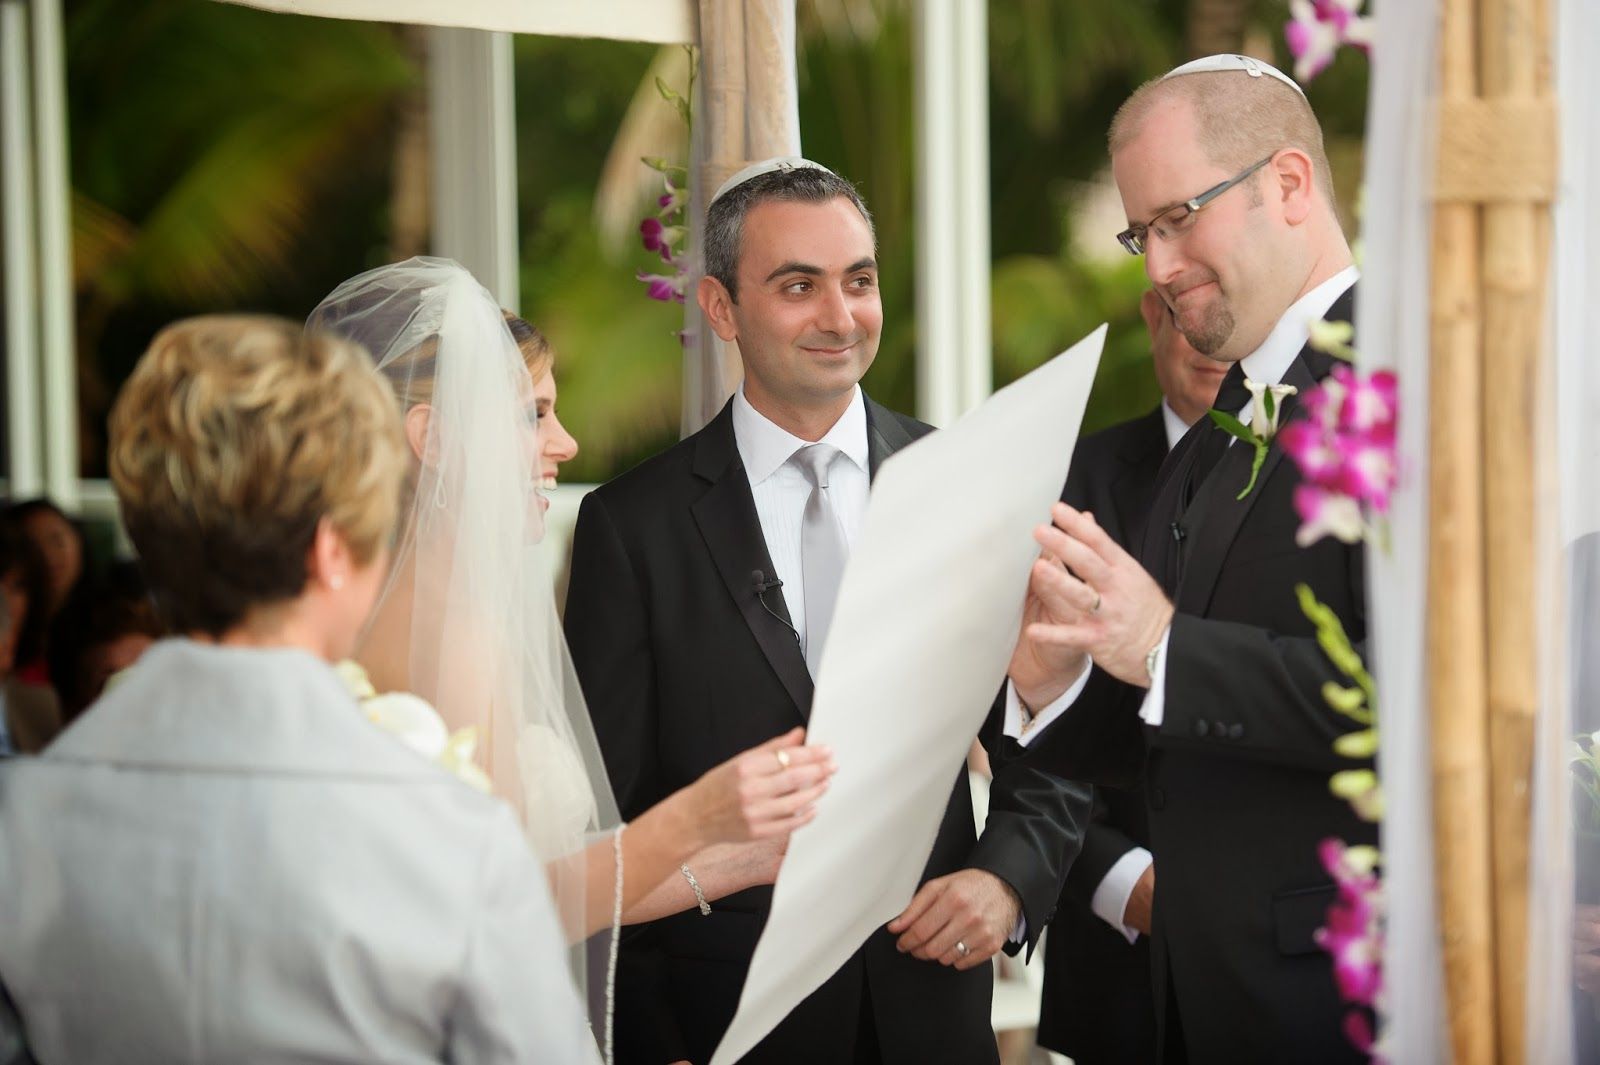 Rabbi for Wedding - Jewish Weddings - Rabbi Jason Miller